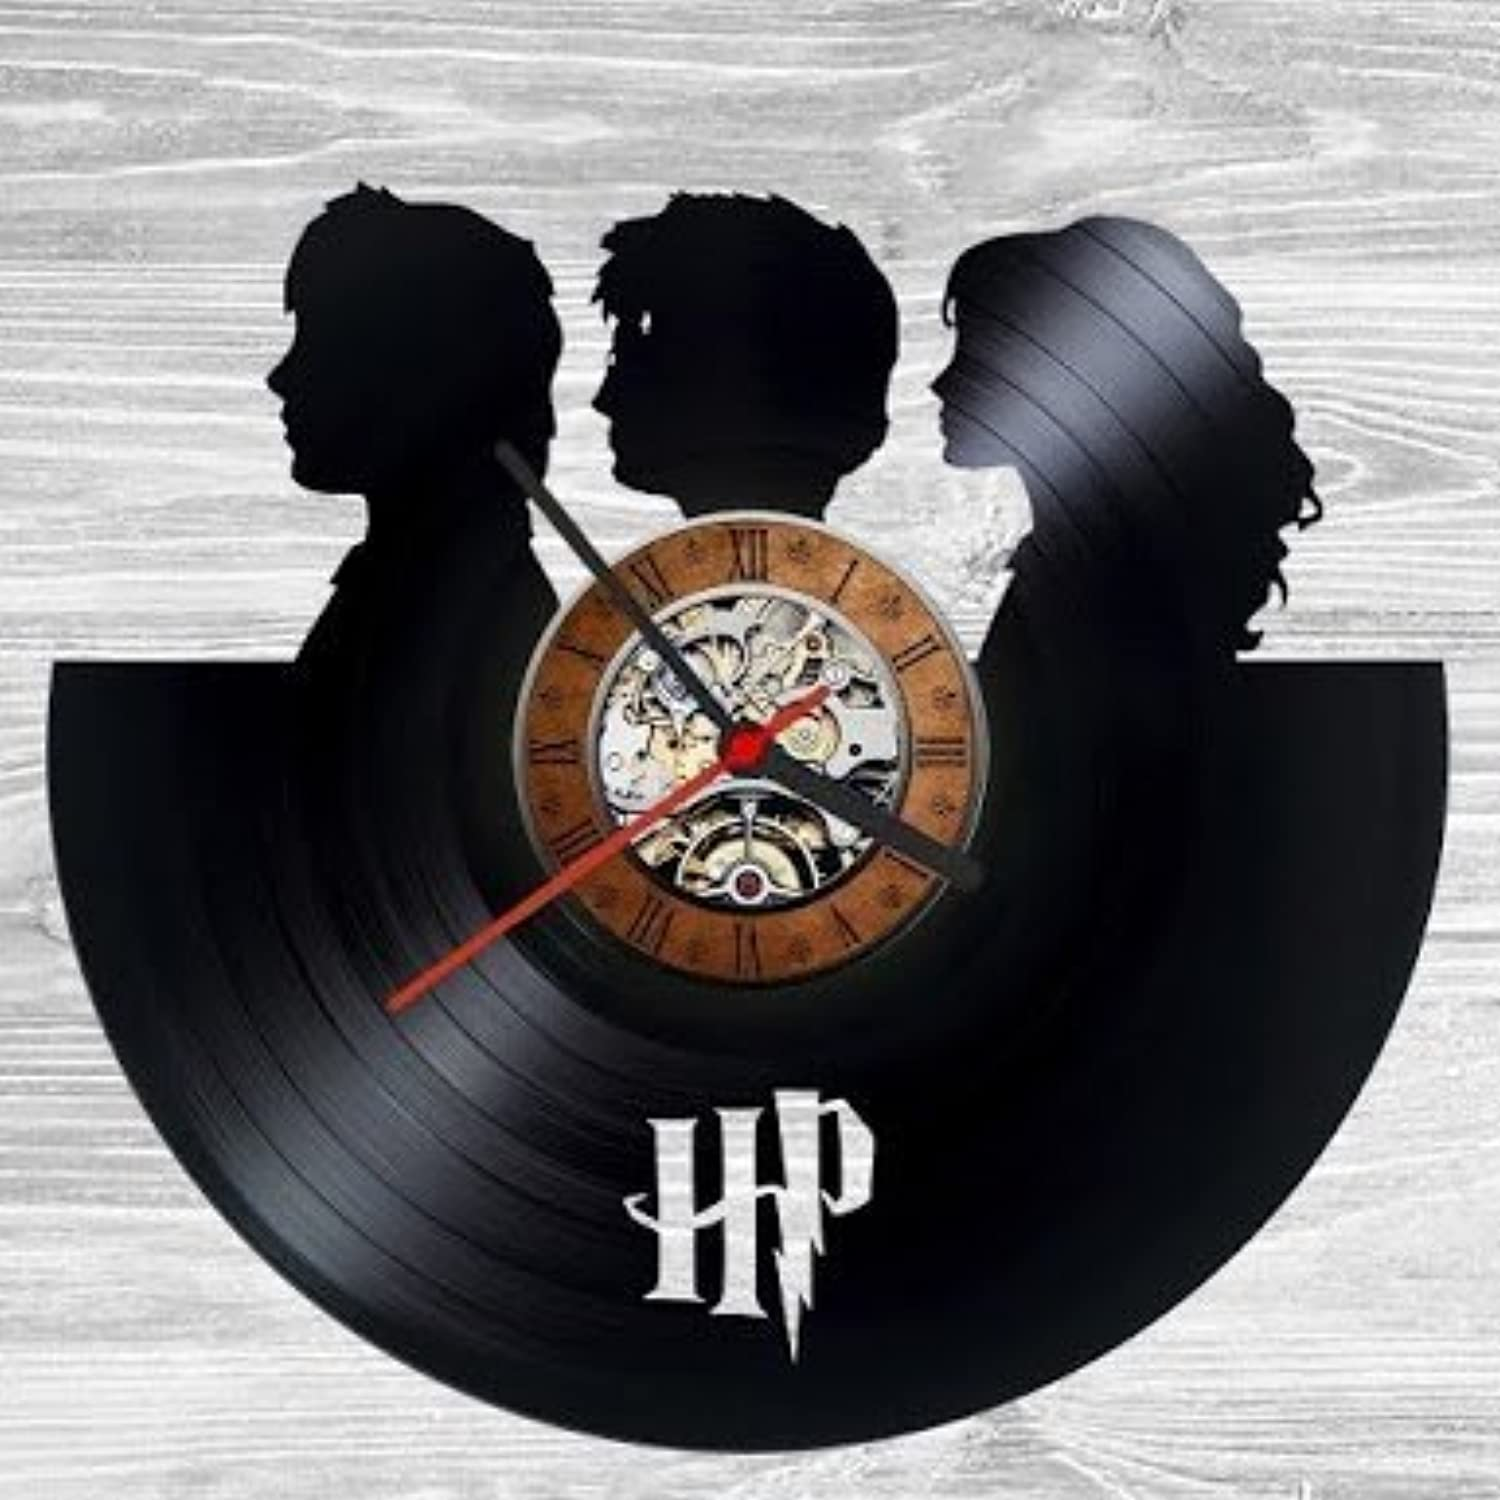 Harry Potter Friends Vinyl Record Clock Wall Decoration Modern Vintage Home Room Art